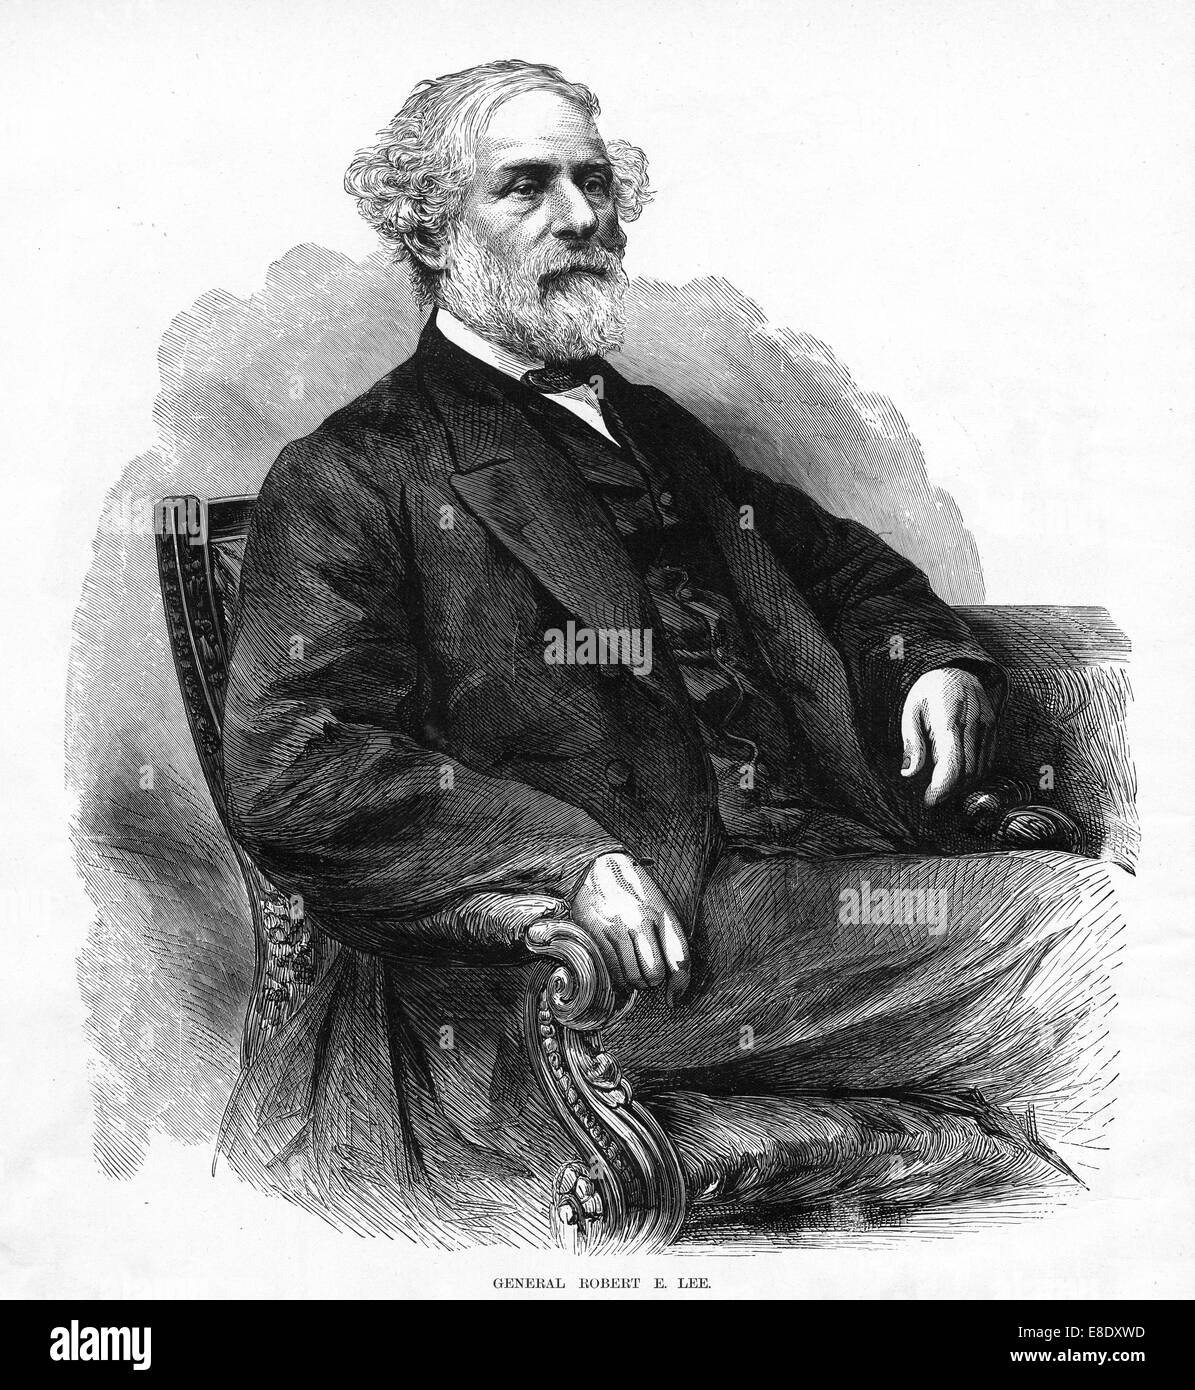 the leadership styles of general robert About robert e lee on leadership robert e lee was a leader for the ages the man heralded by winston churchill as one of the noblest americans who ever lived inspired an out-manned, out-gunned army to achieve greatness on the battlefield.